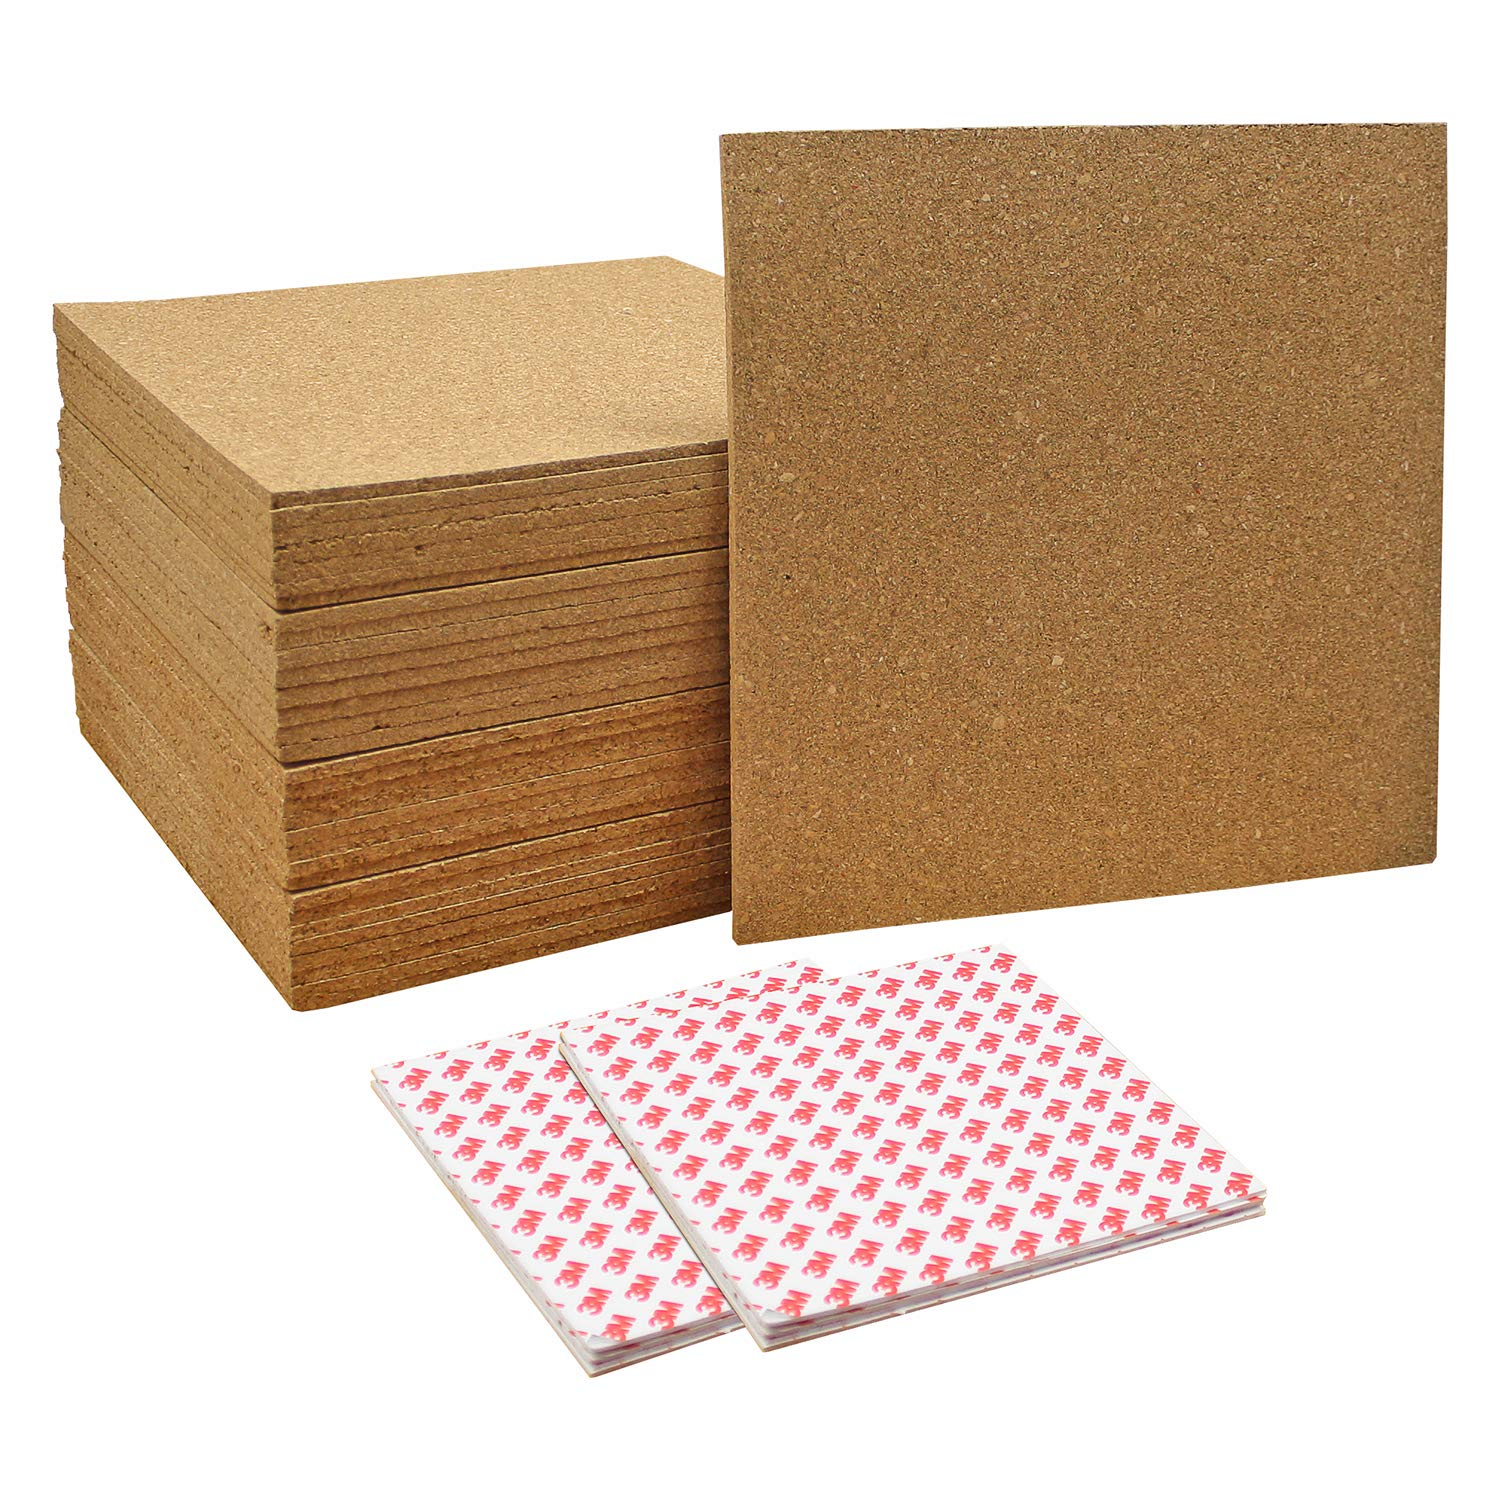 Thornton's Office Supplies Modular Frameless Cork Mini Wall Bulletin Board Tiles with 3M Adhesive, Natural, 12 Inch x 12 Inch, Frameless (32-Count) by Thornton's Office Supplies (Image #1)